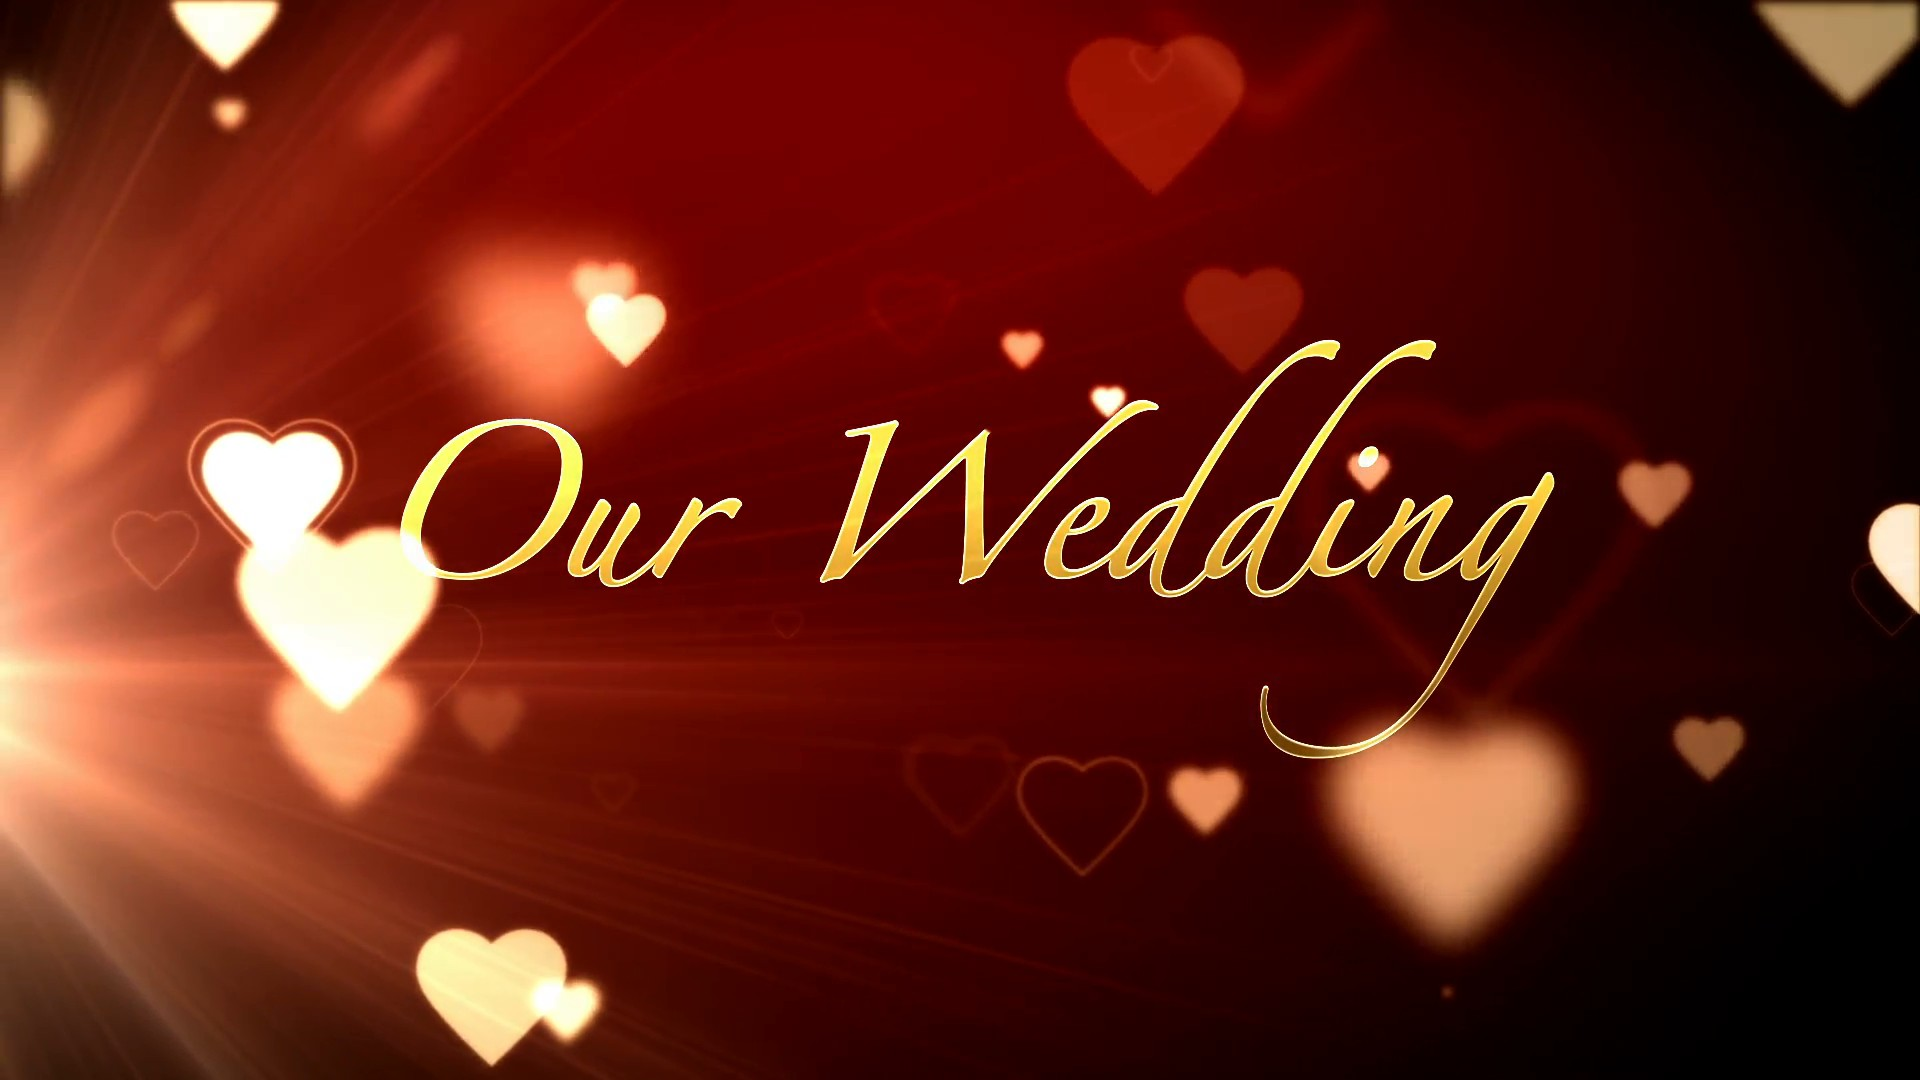 Wedding background ·① download free awesome hd wallpapers